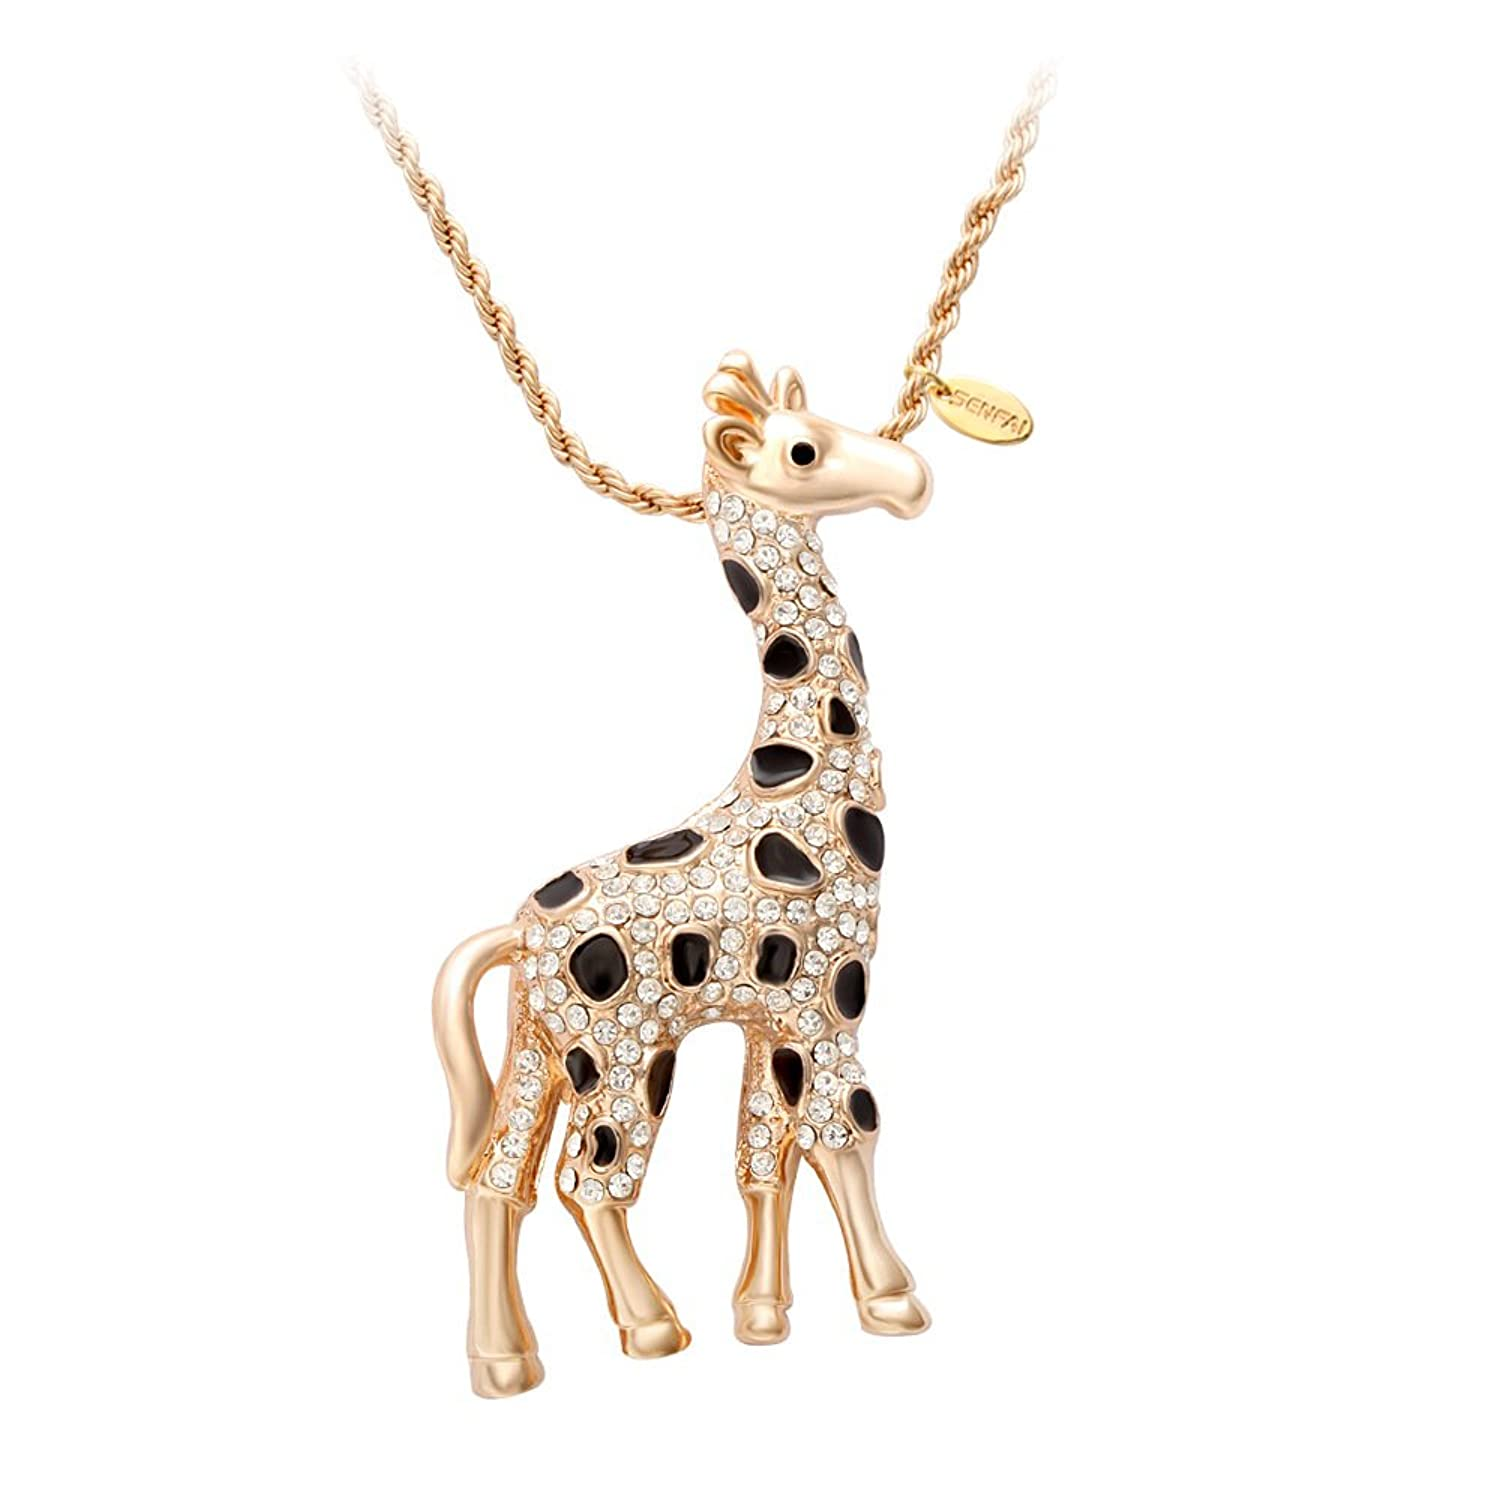 pendant sterling silver hugging and necklace giraffe